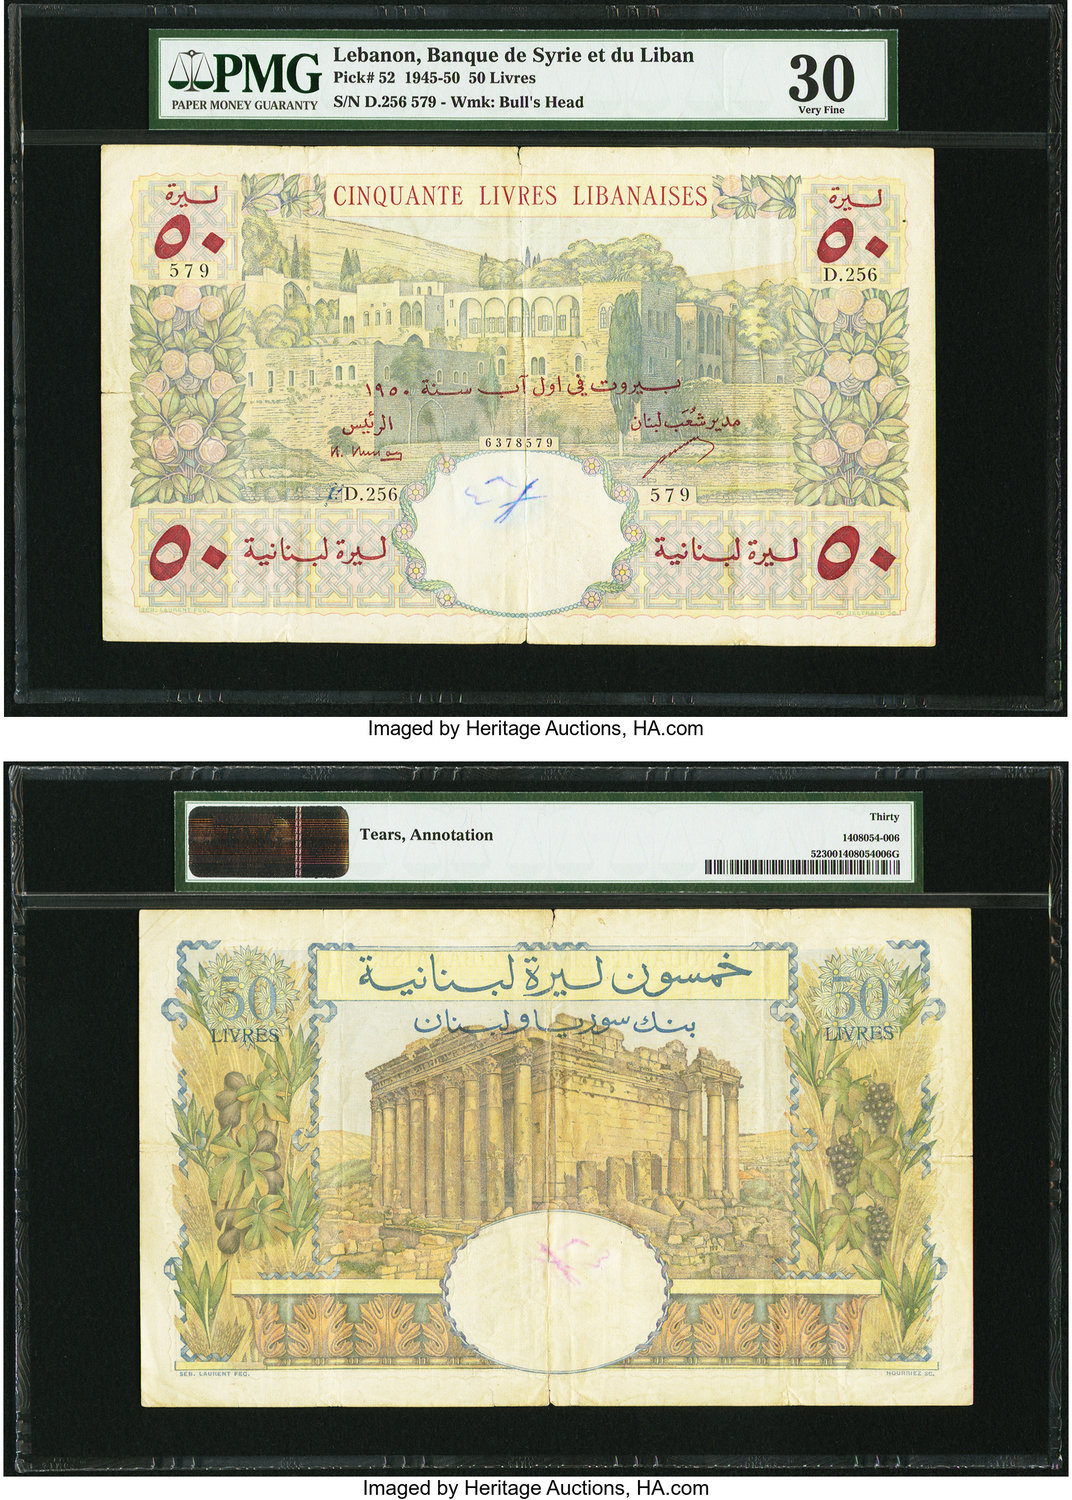 World Currency Lebanon Banque Du Syrie Et Liban 50 Livres 1945 Pick 52 Some Tears And An Annotation Are Noticed